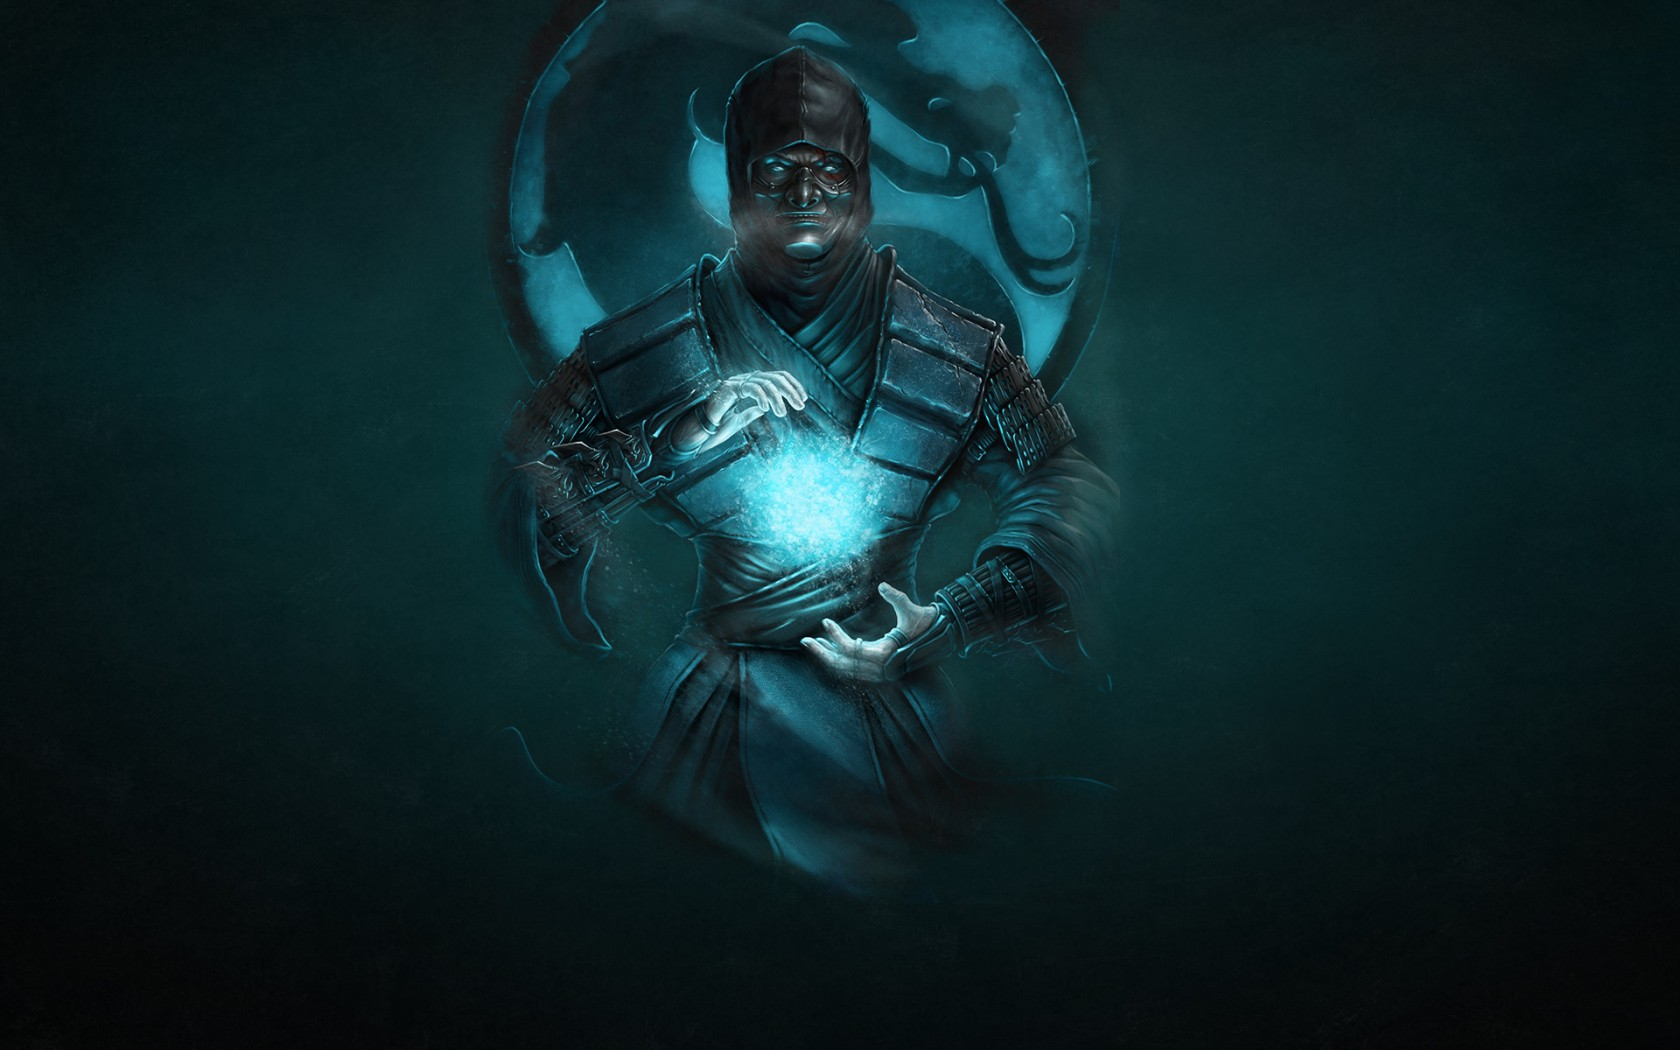 Mortal Kombat wallpaper Sub-Zero 11